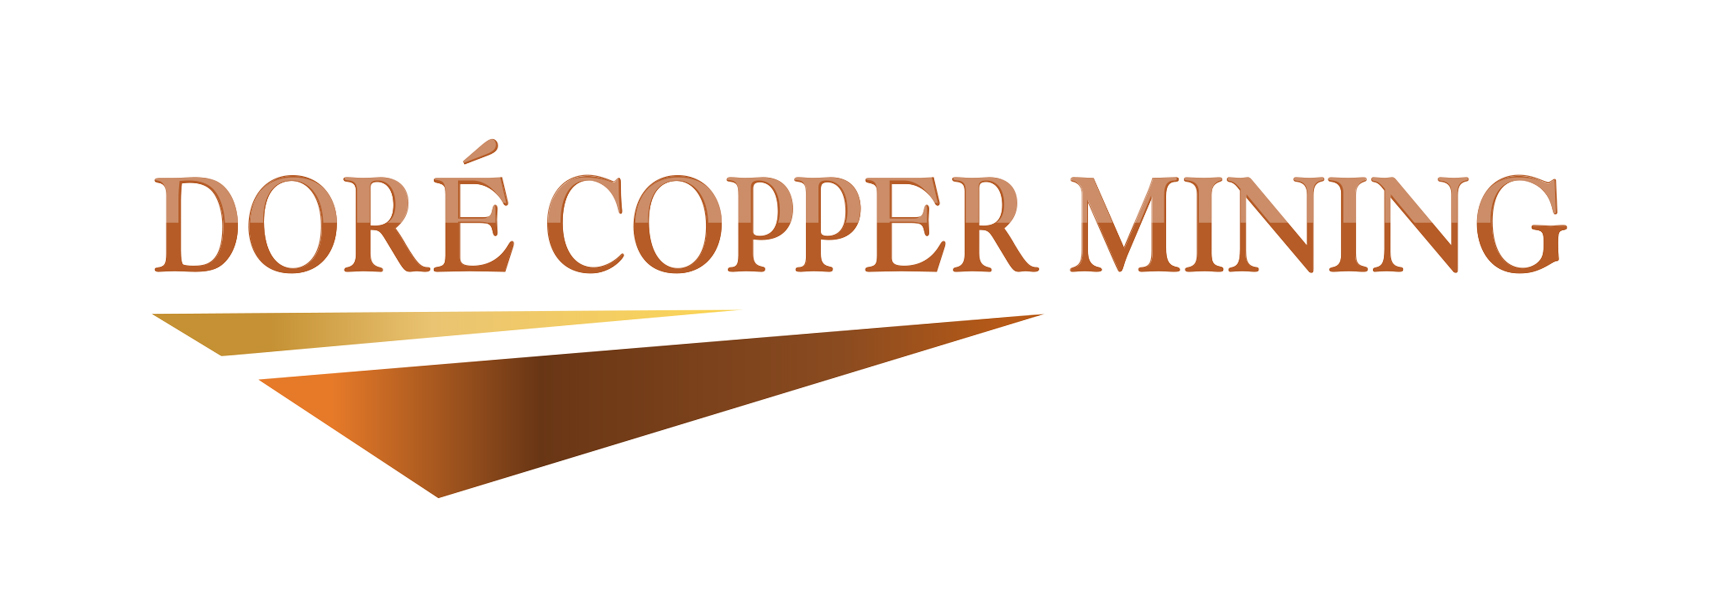 Doré Copper Announces Increase to Previously Announced Non-Brokered Private Placement to Up to C$5